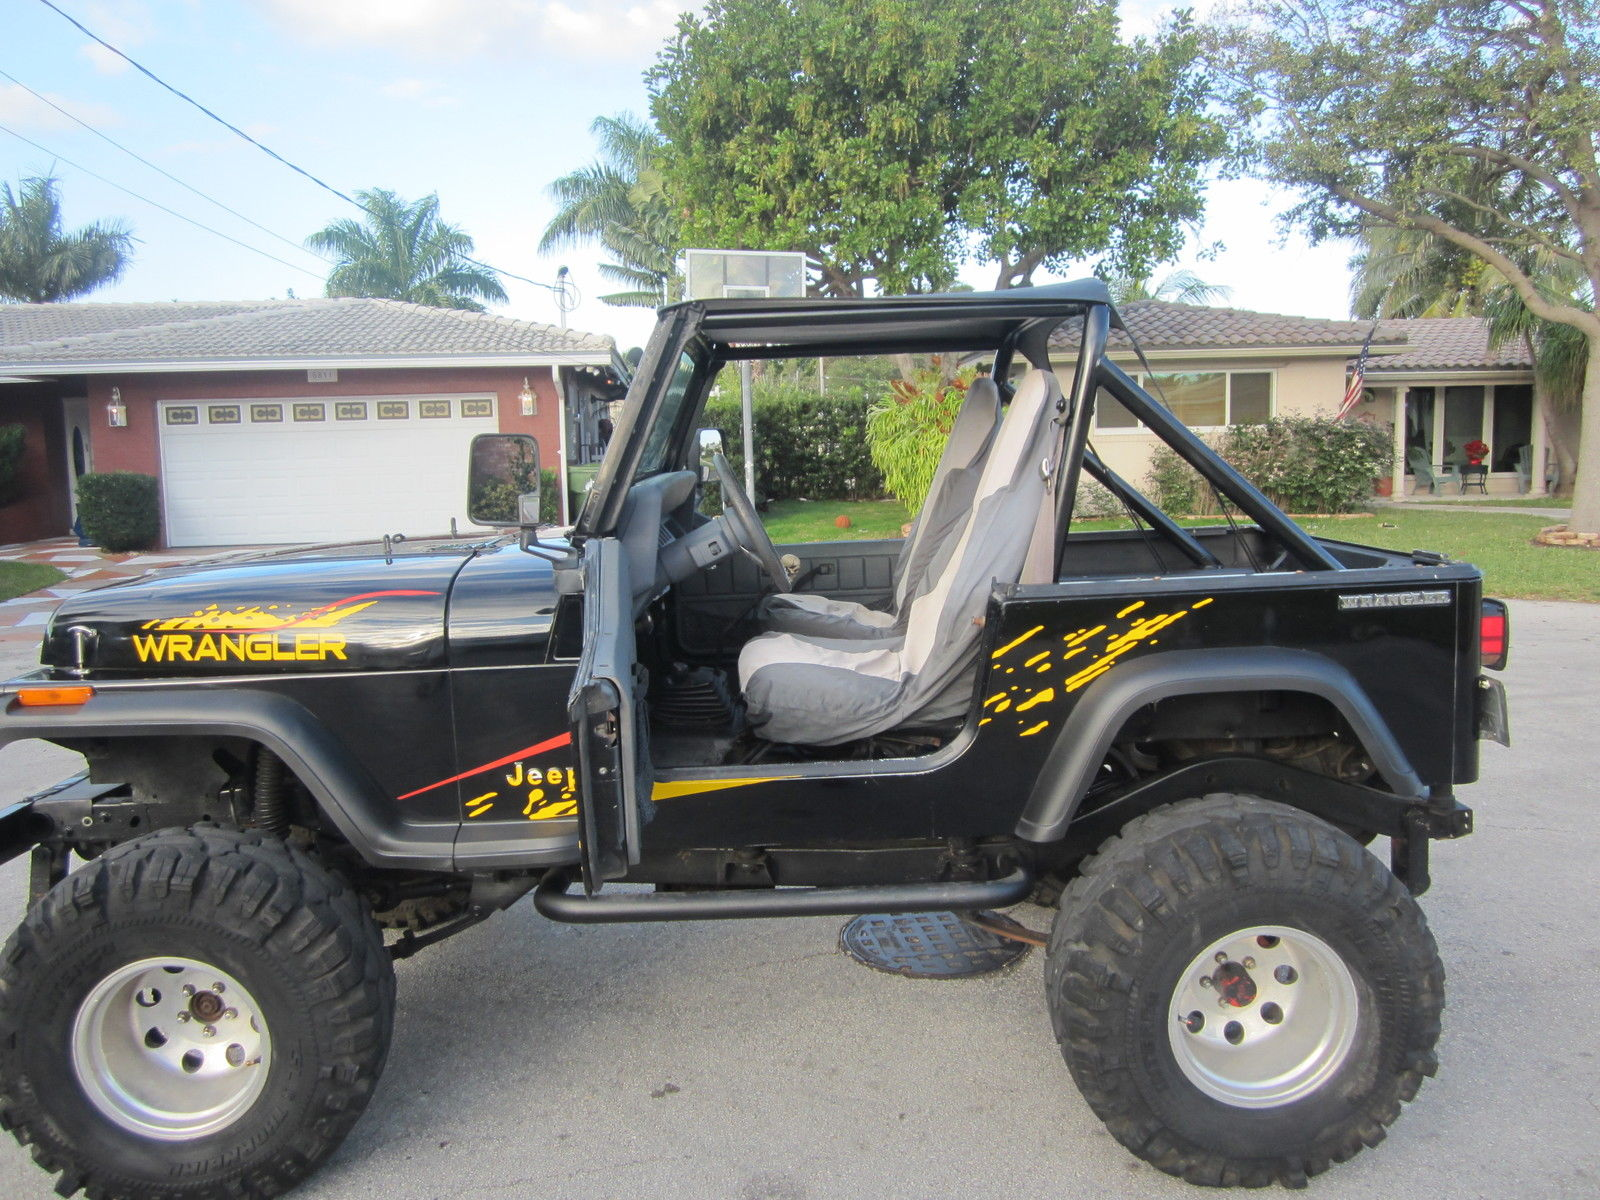 1990 jeep wrangler 4x4 lifted clean florida jeep 00 obo 954 937 8271 for sale in fort lauderdale. Black Bedroom Furniture Sets. Home Design Ideas